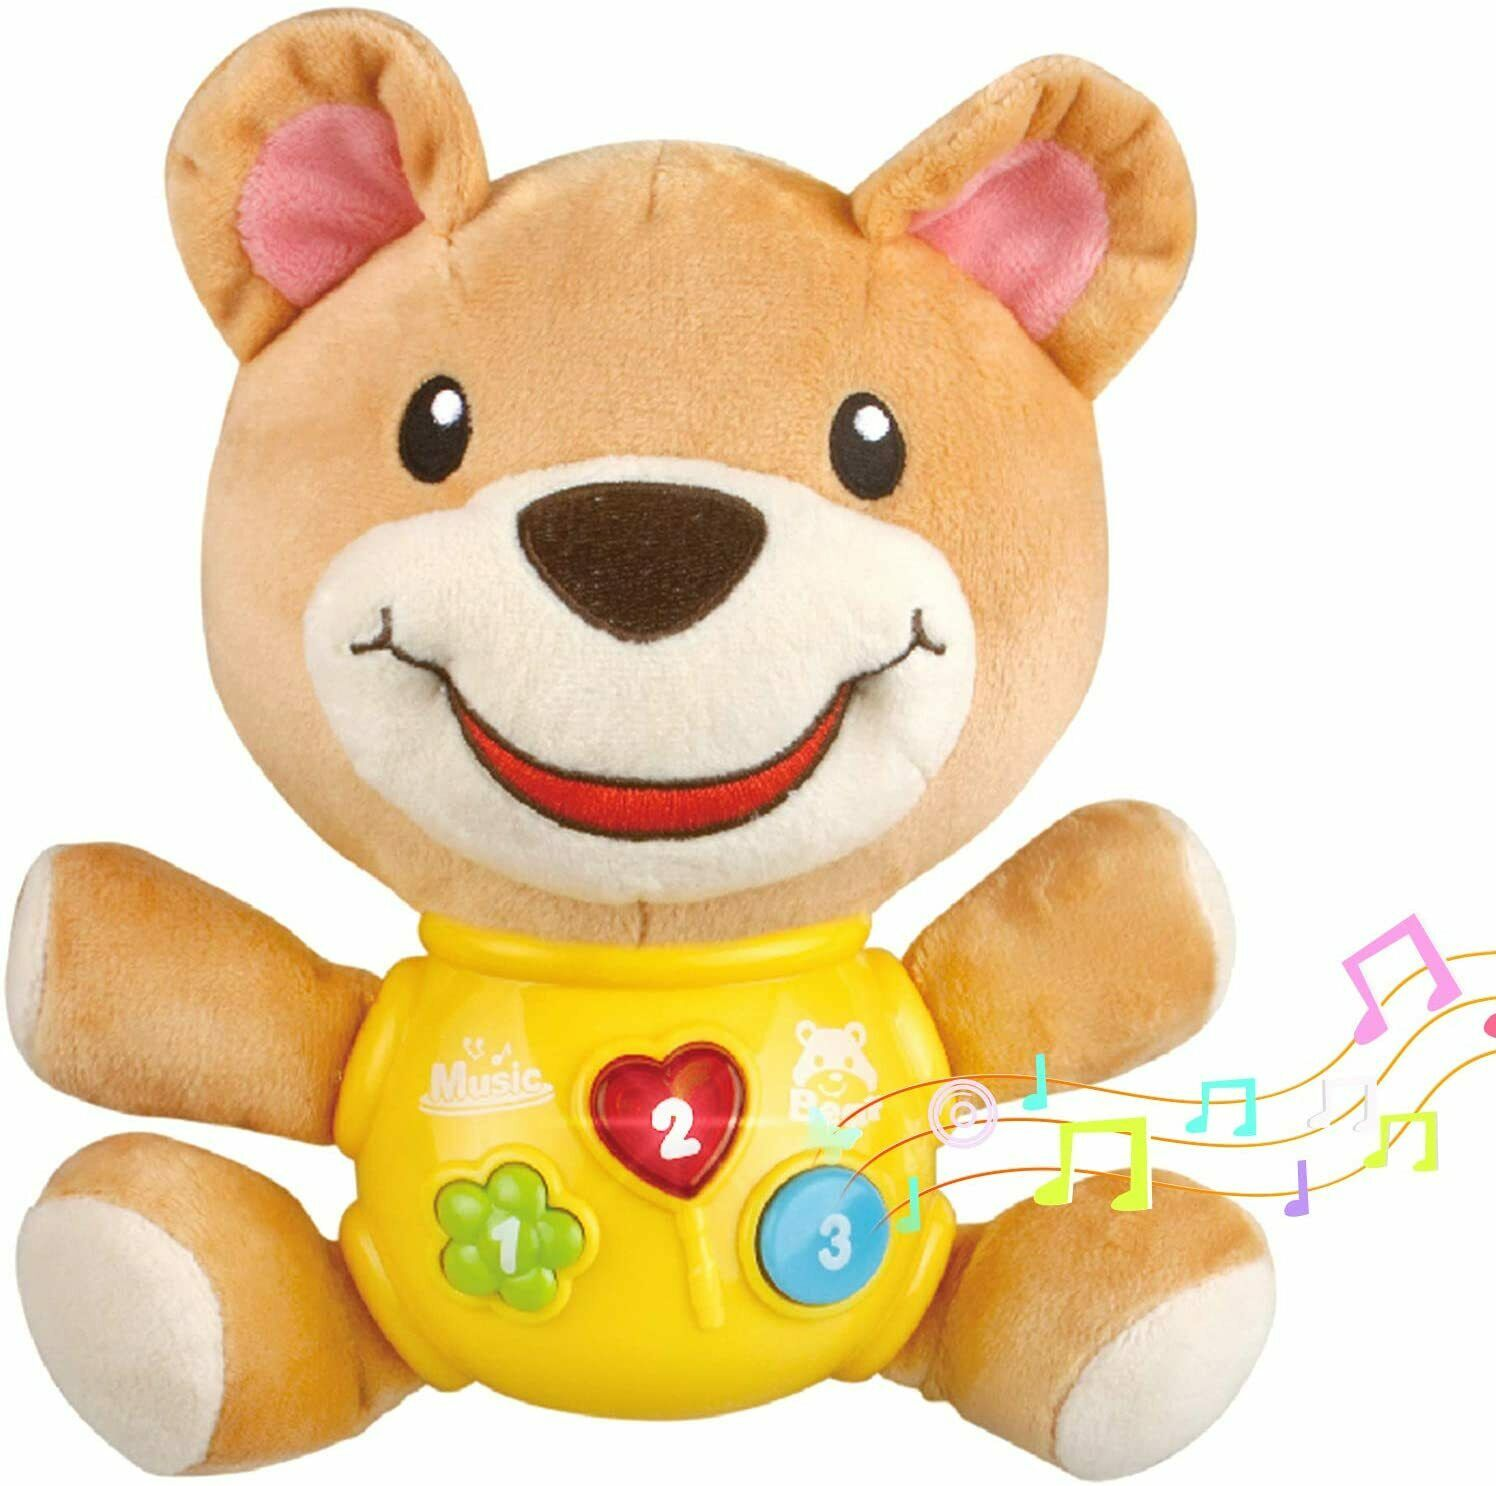 Plush Baby Toy Infant Musical Toys Bear Stuffed Animal Toys with Light 12 Music Baby